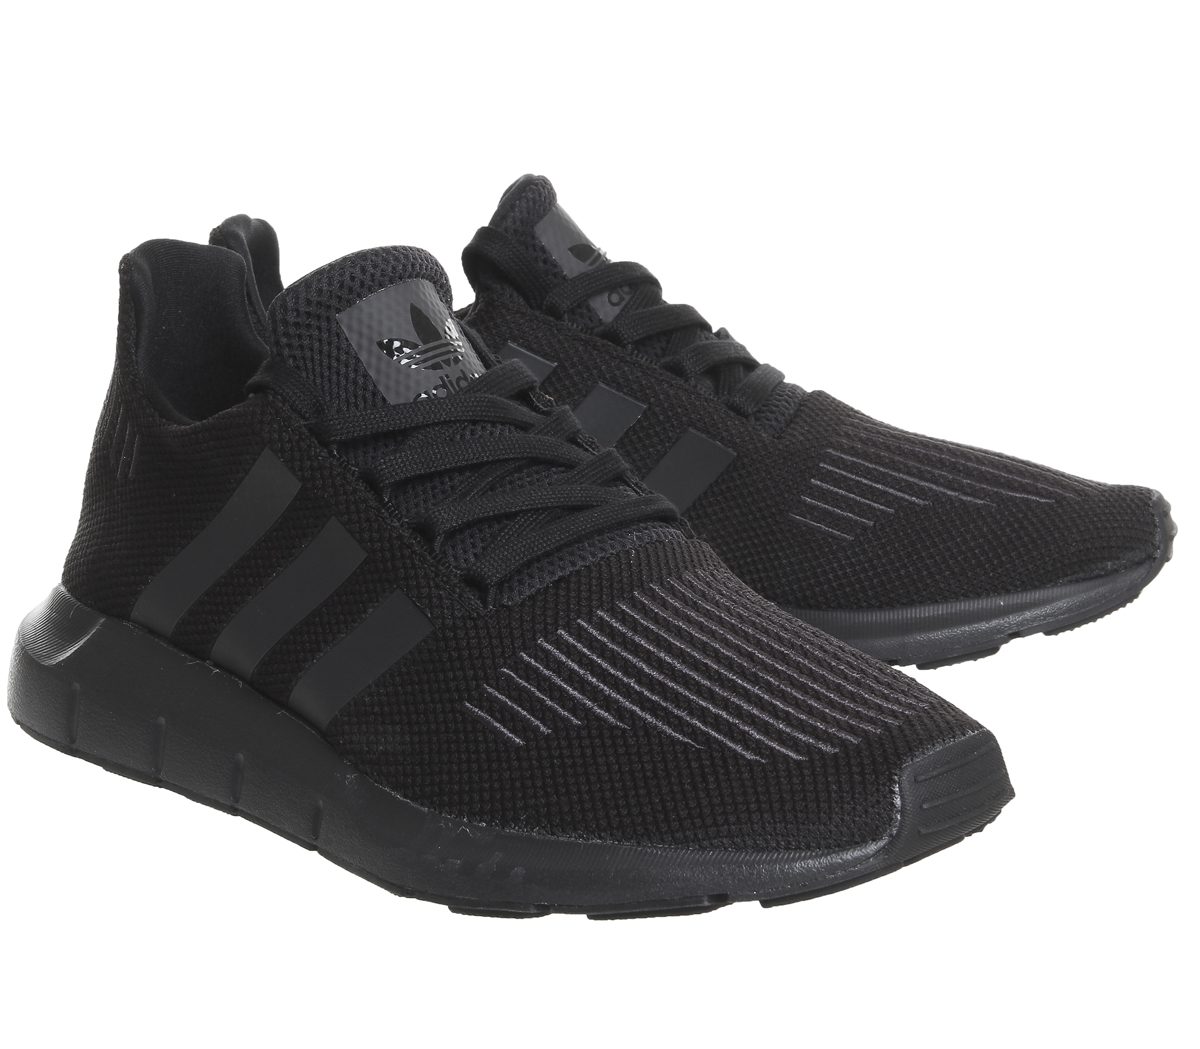 sports shoes f357b b0f66 CENTINELA Mujeres Adidas Swift ejecutar entrenadores MONO negro zapatos